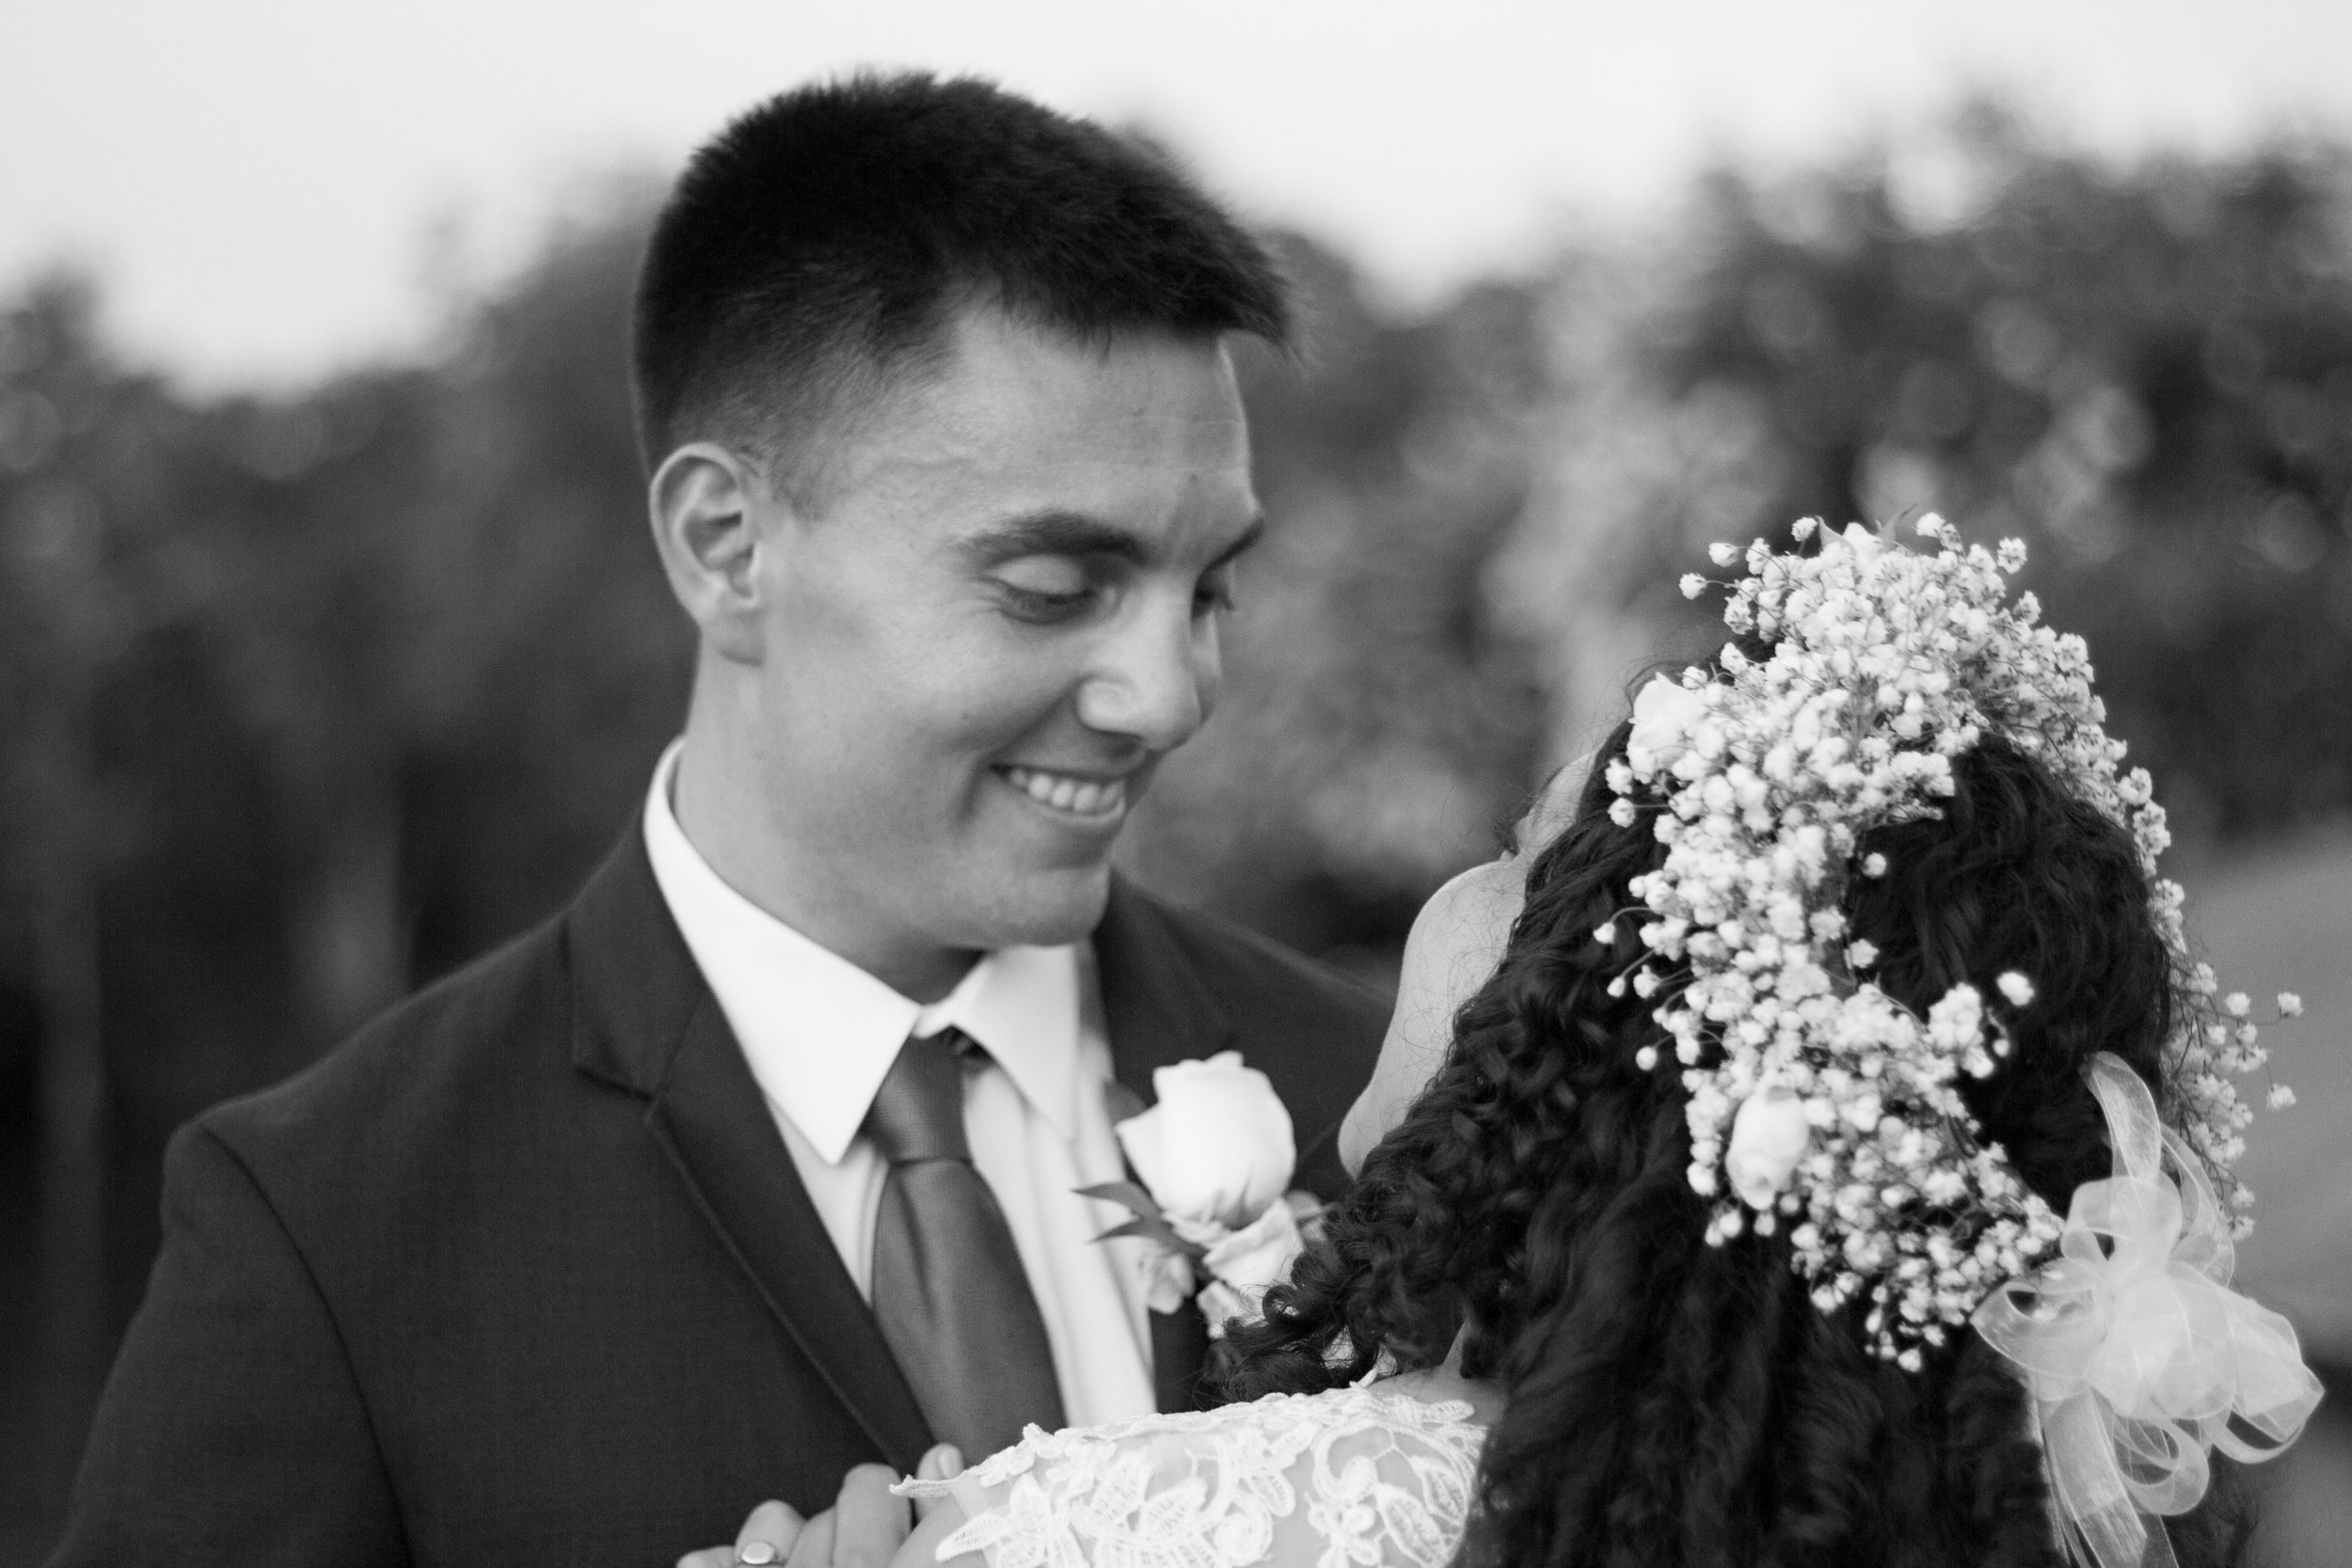 Cathy and Chris Wedding Photos - Black and White - by Brittany Castillo Meadow Portraits (16 of 21).jpg